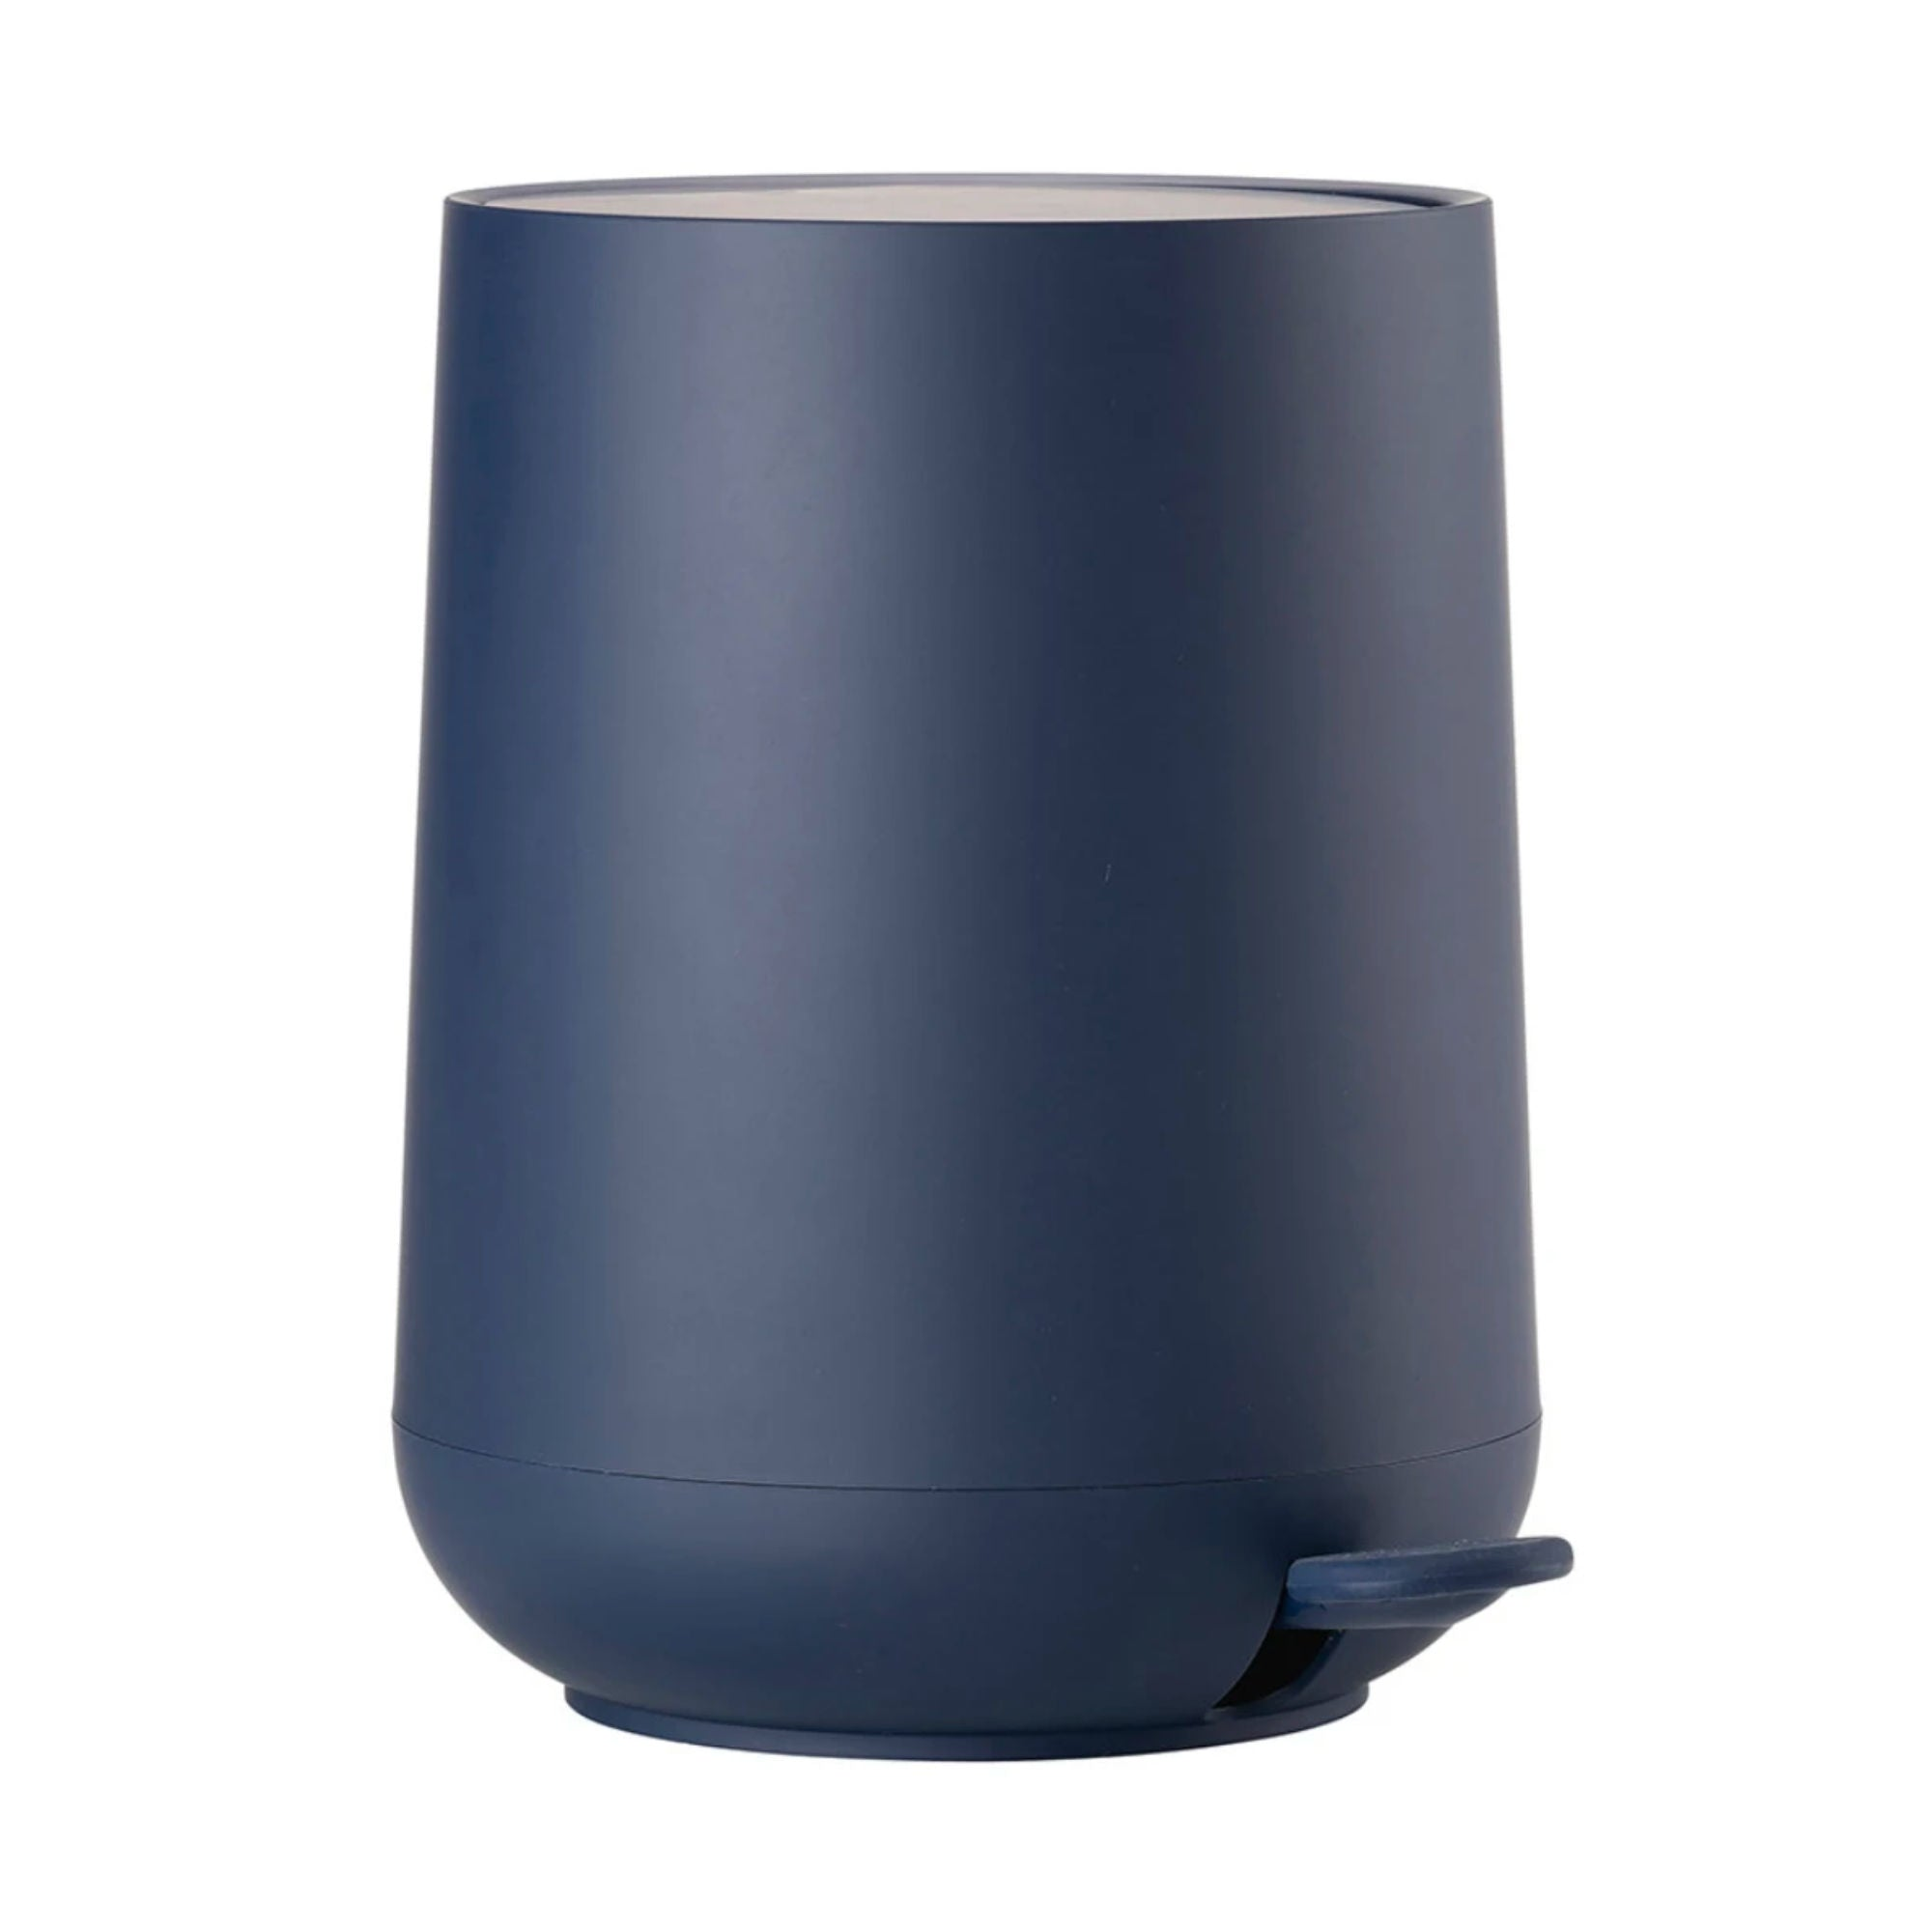 Zone Denmark Nova Pedal Bin 5 Liters , Royal Blue